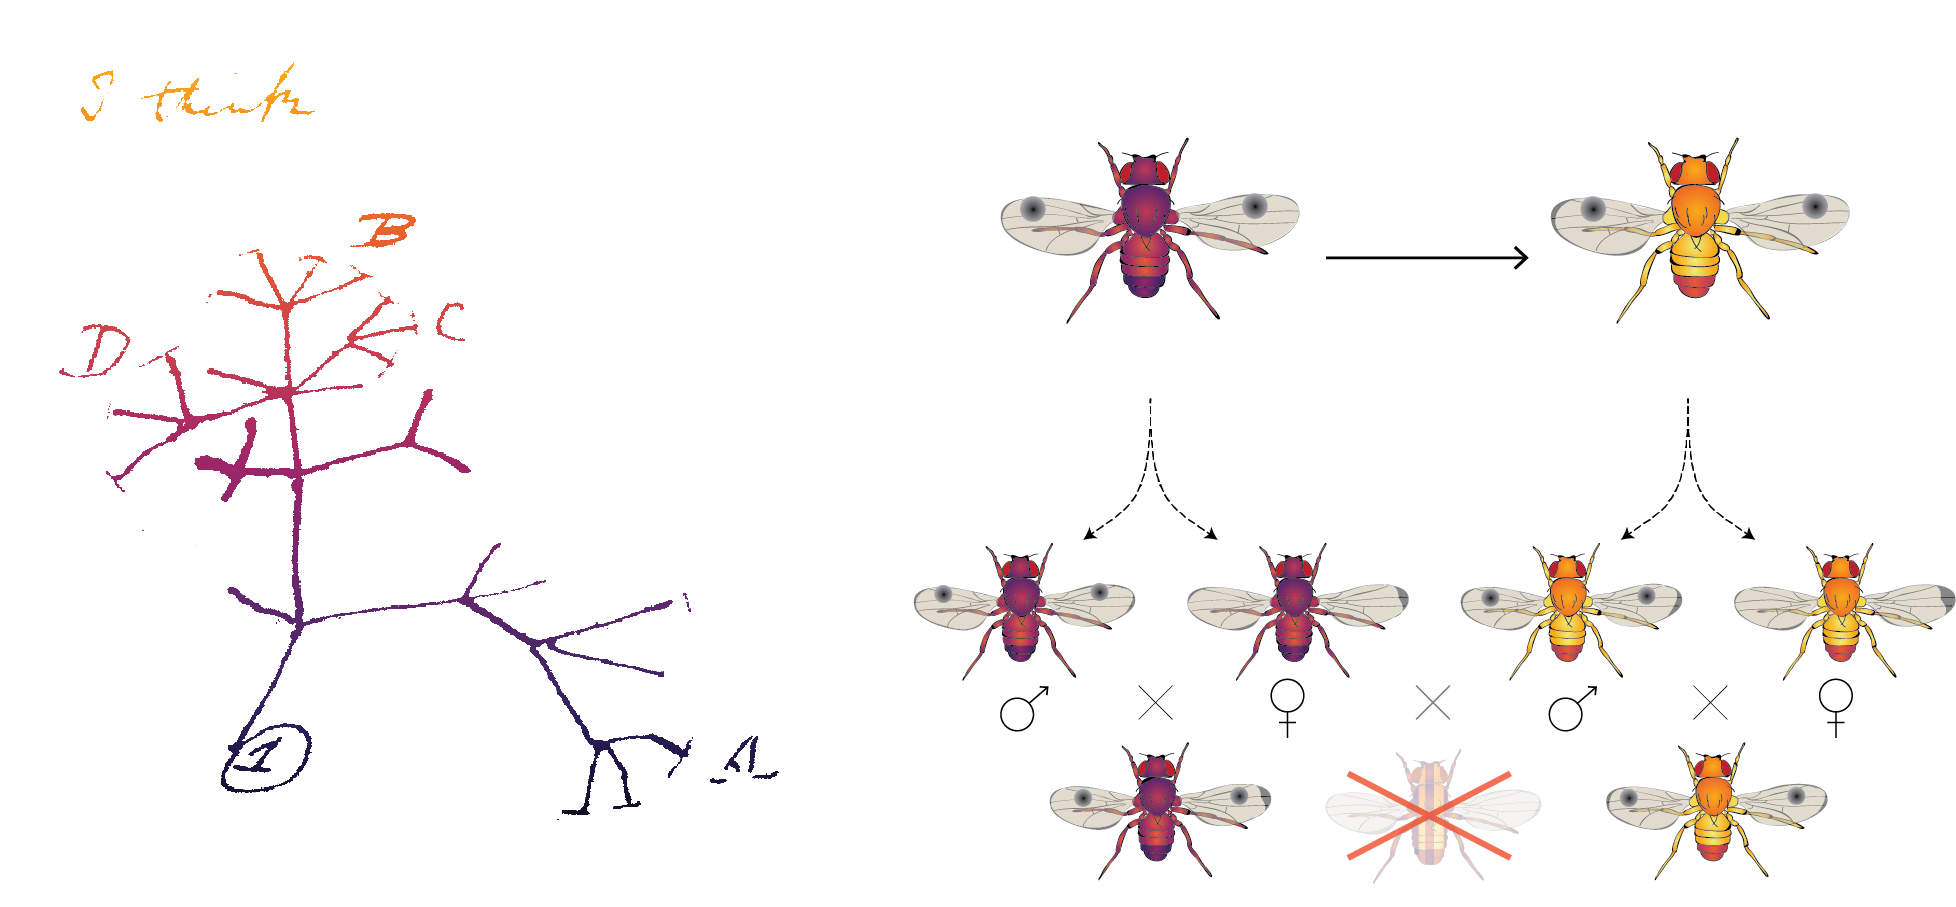 2. Engineered Speciation - Species boundaries are defined by pre-zygotic and post-zygotic barriers to genetic exchange. By engineering such barriers, we can essentially create 'new' species. We apply this technology to limit the gene flow between populations and as a mechanism to control or eradicate pest organisms. Synthetic species can also be used as drivers of evolution in competitive co-cultures.